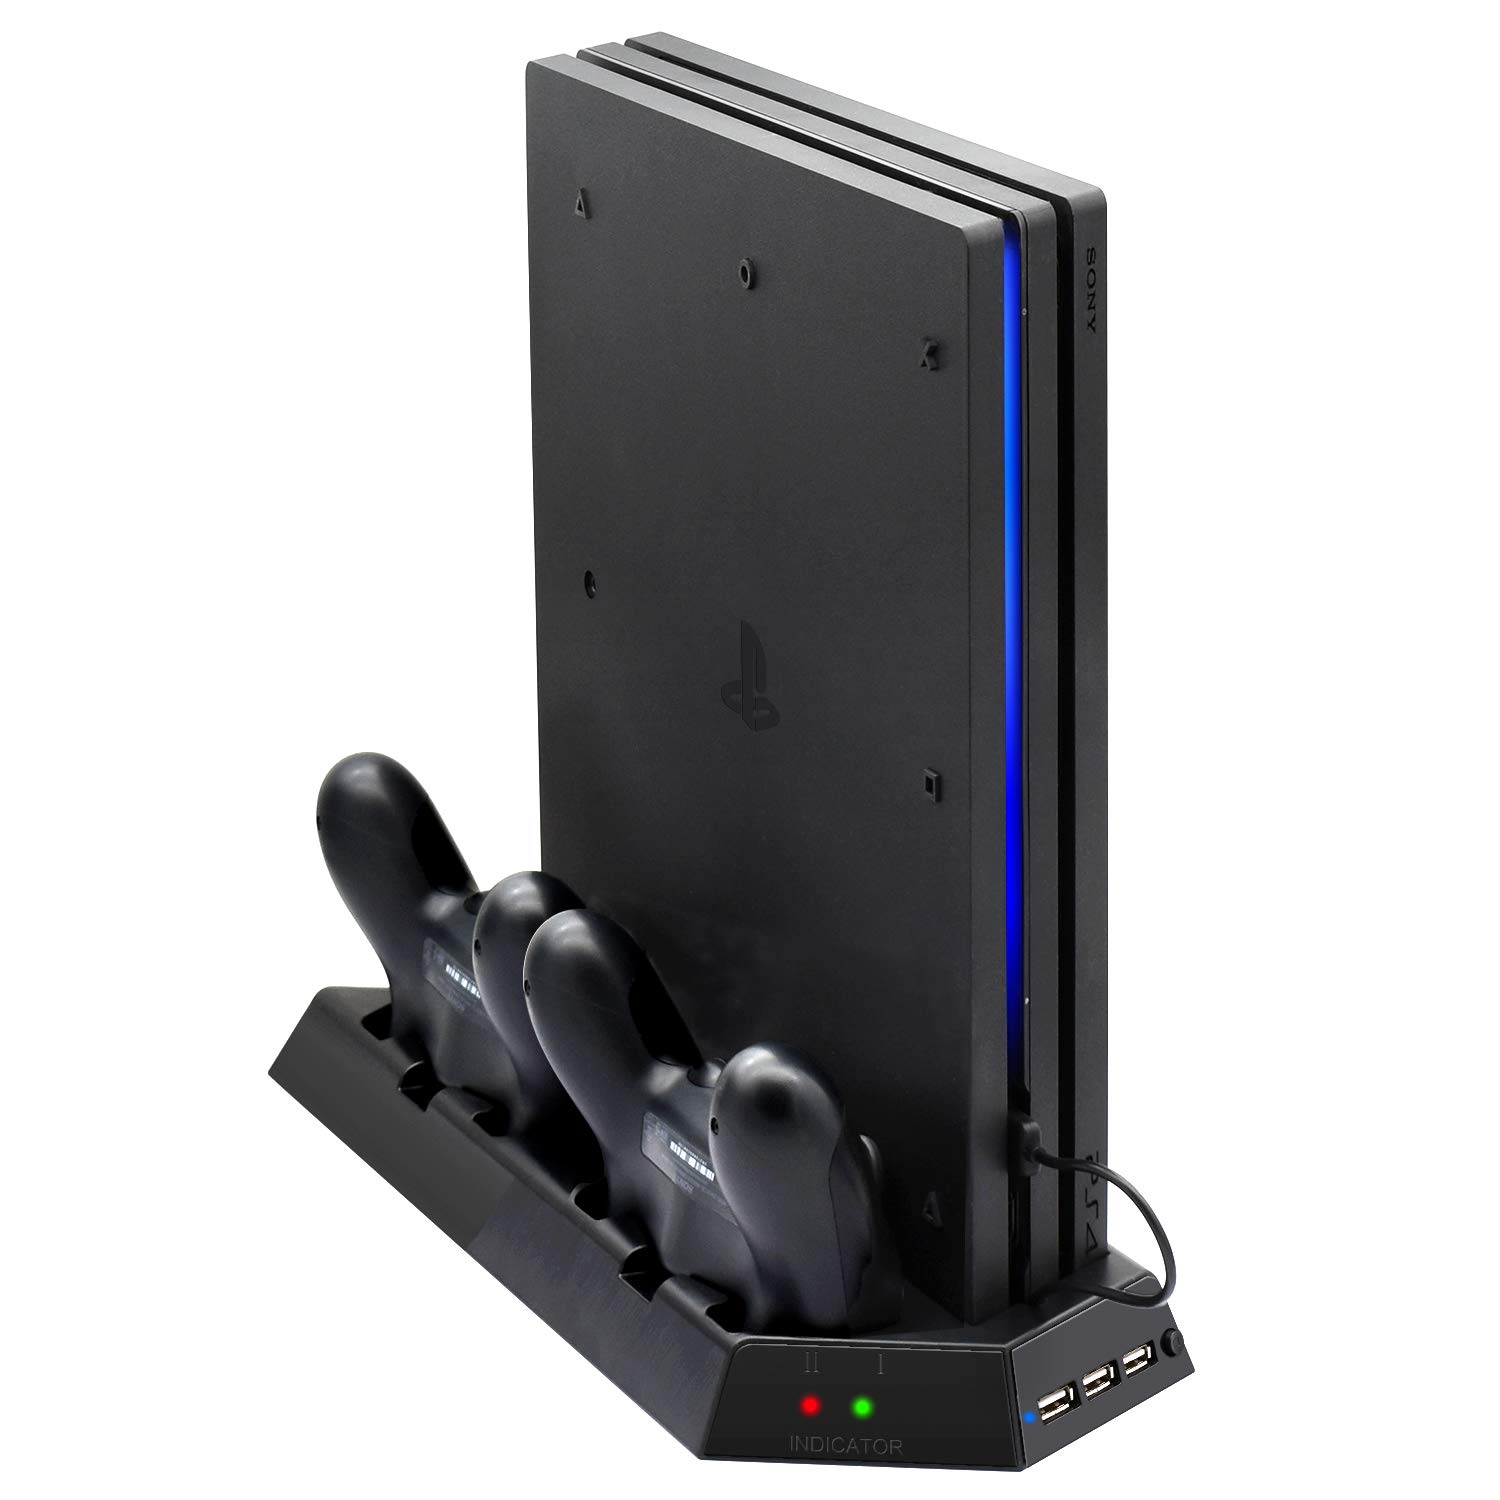 Vertical Stand for PS4 Pro with Cooling Fan, FastSnail Controller Charging Station for Playstation 4 Pro, Charger for DualShock 4 Controllers with LED Charging Indicator by FASTSNAIL